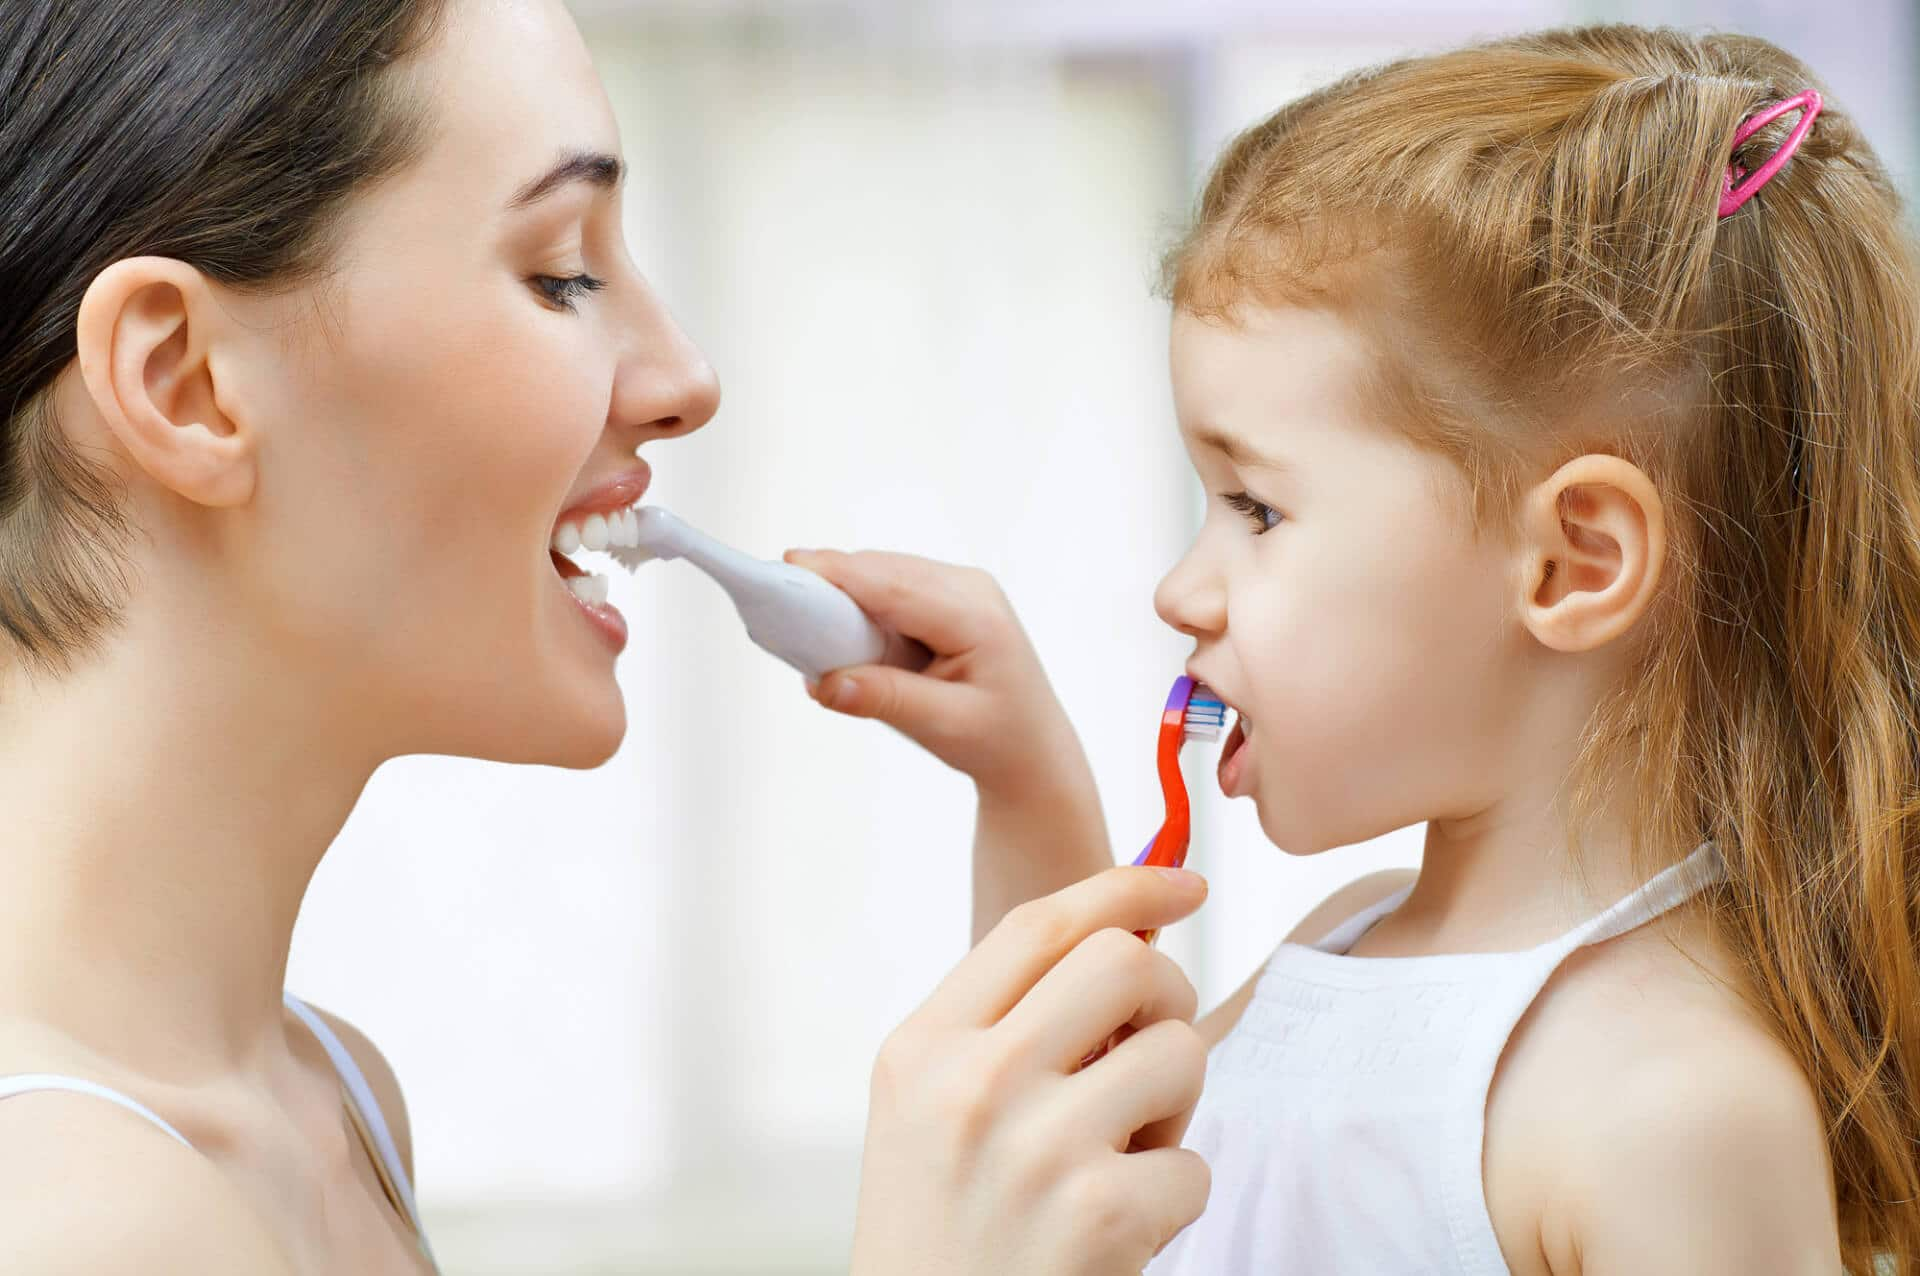 Where can I find the best pediatric dentist in boca raton? Choosing the right toothpaste